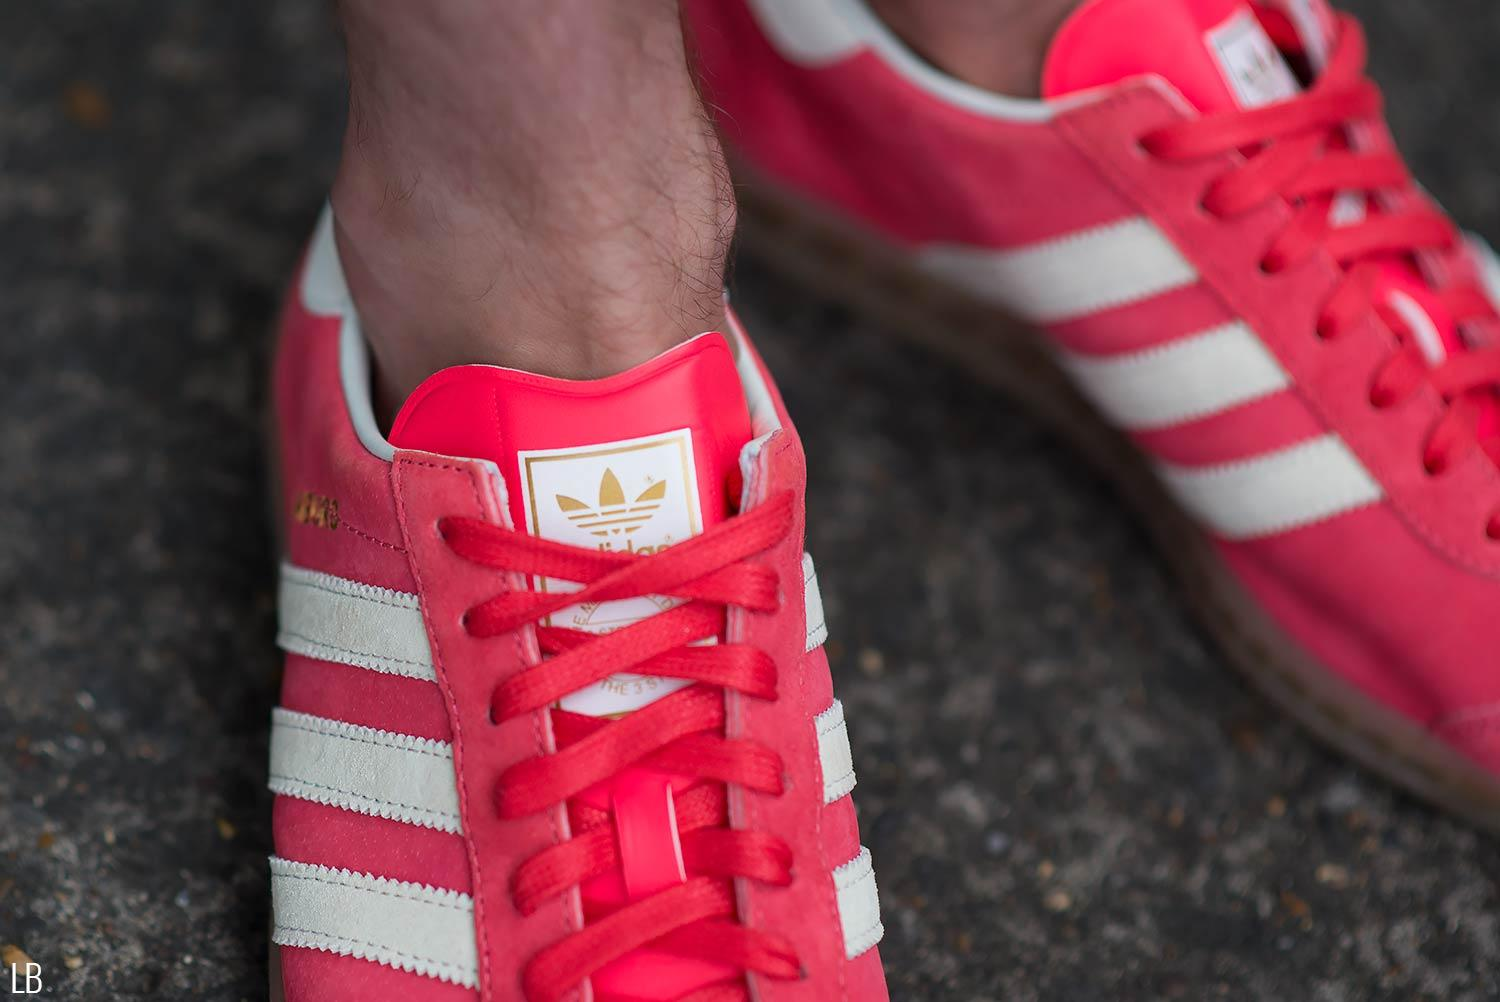 Men's Adidas Hamburg Shock Red Gum Trainers Sneakers Review